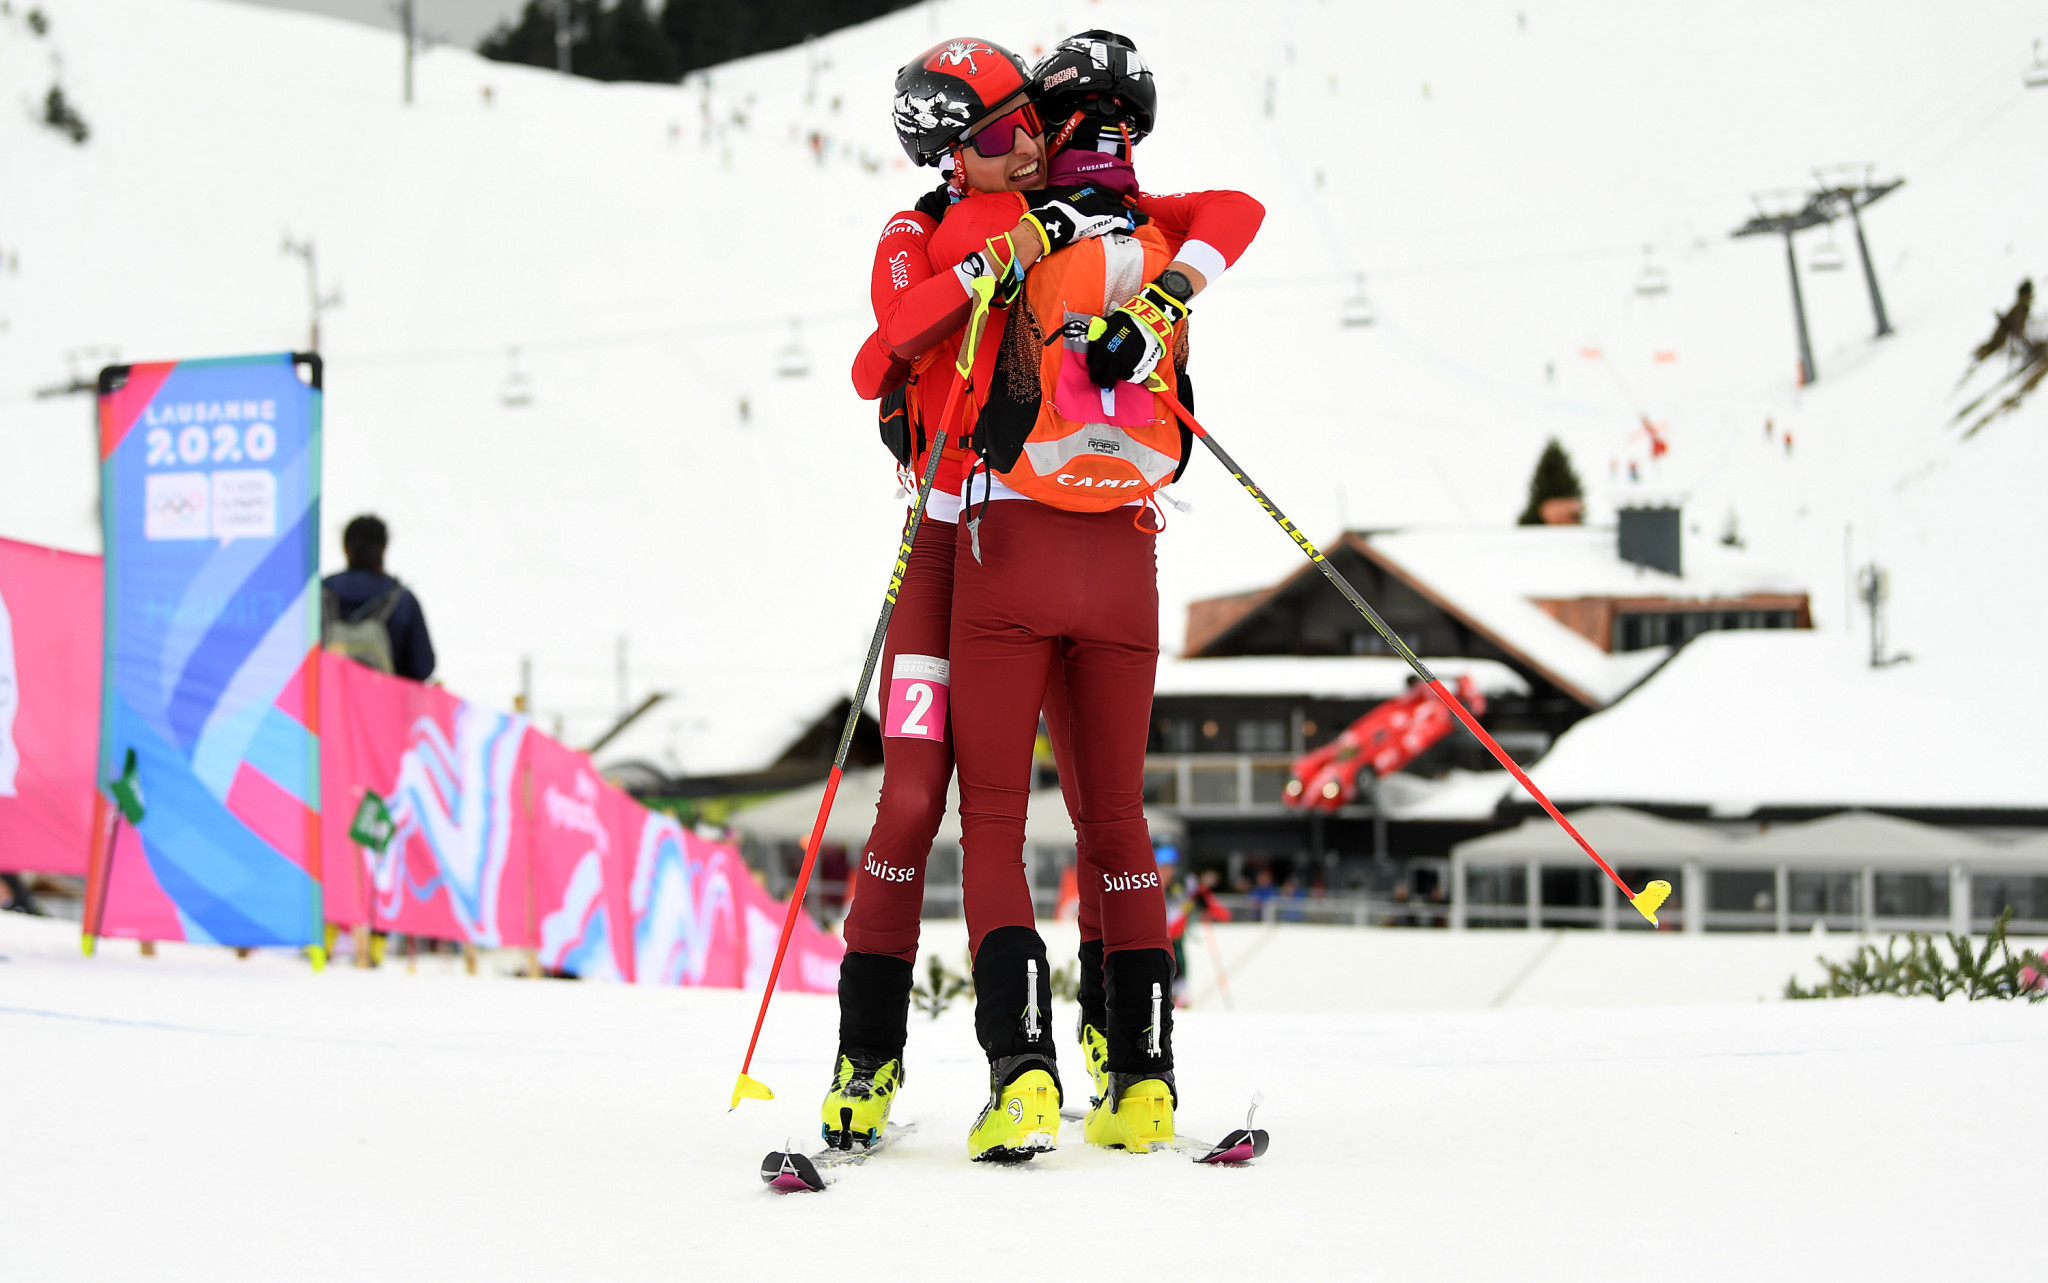 Bussard twins win ski mountaineering silver and gold at Lausanne 2020